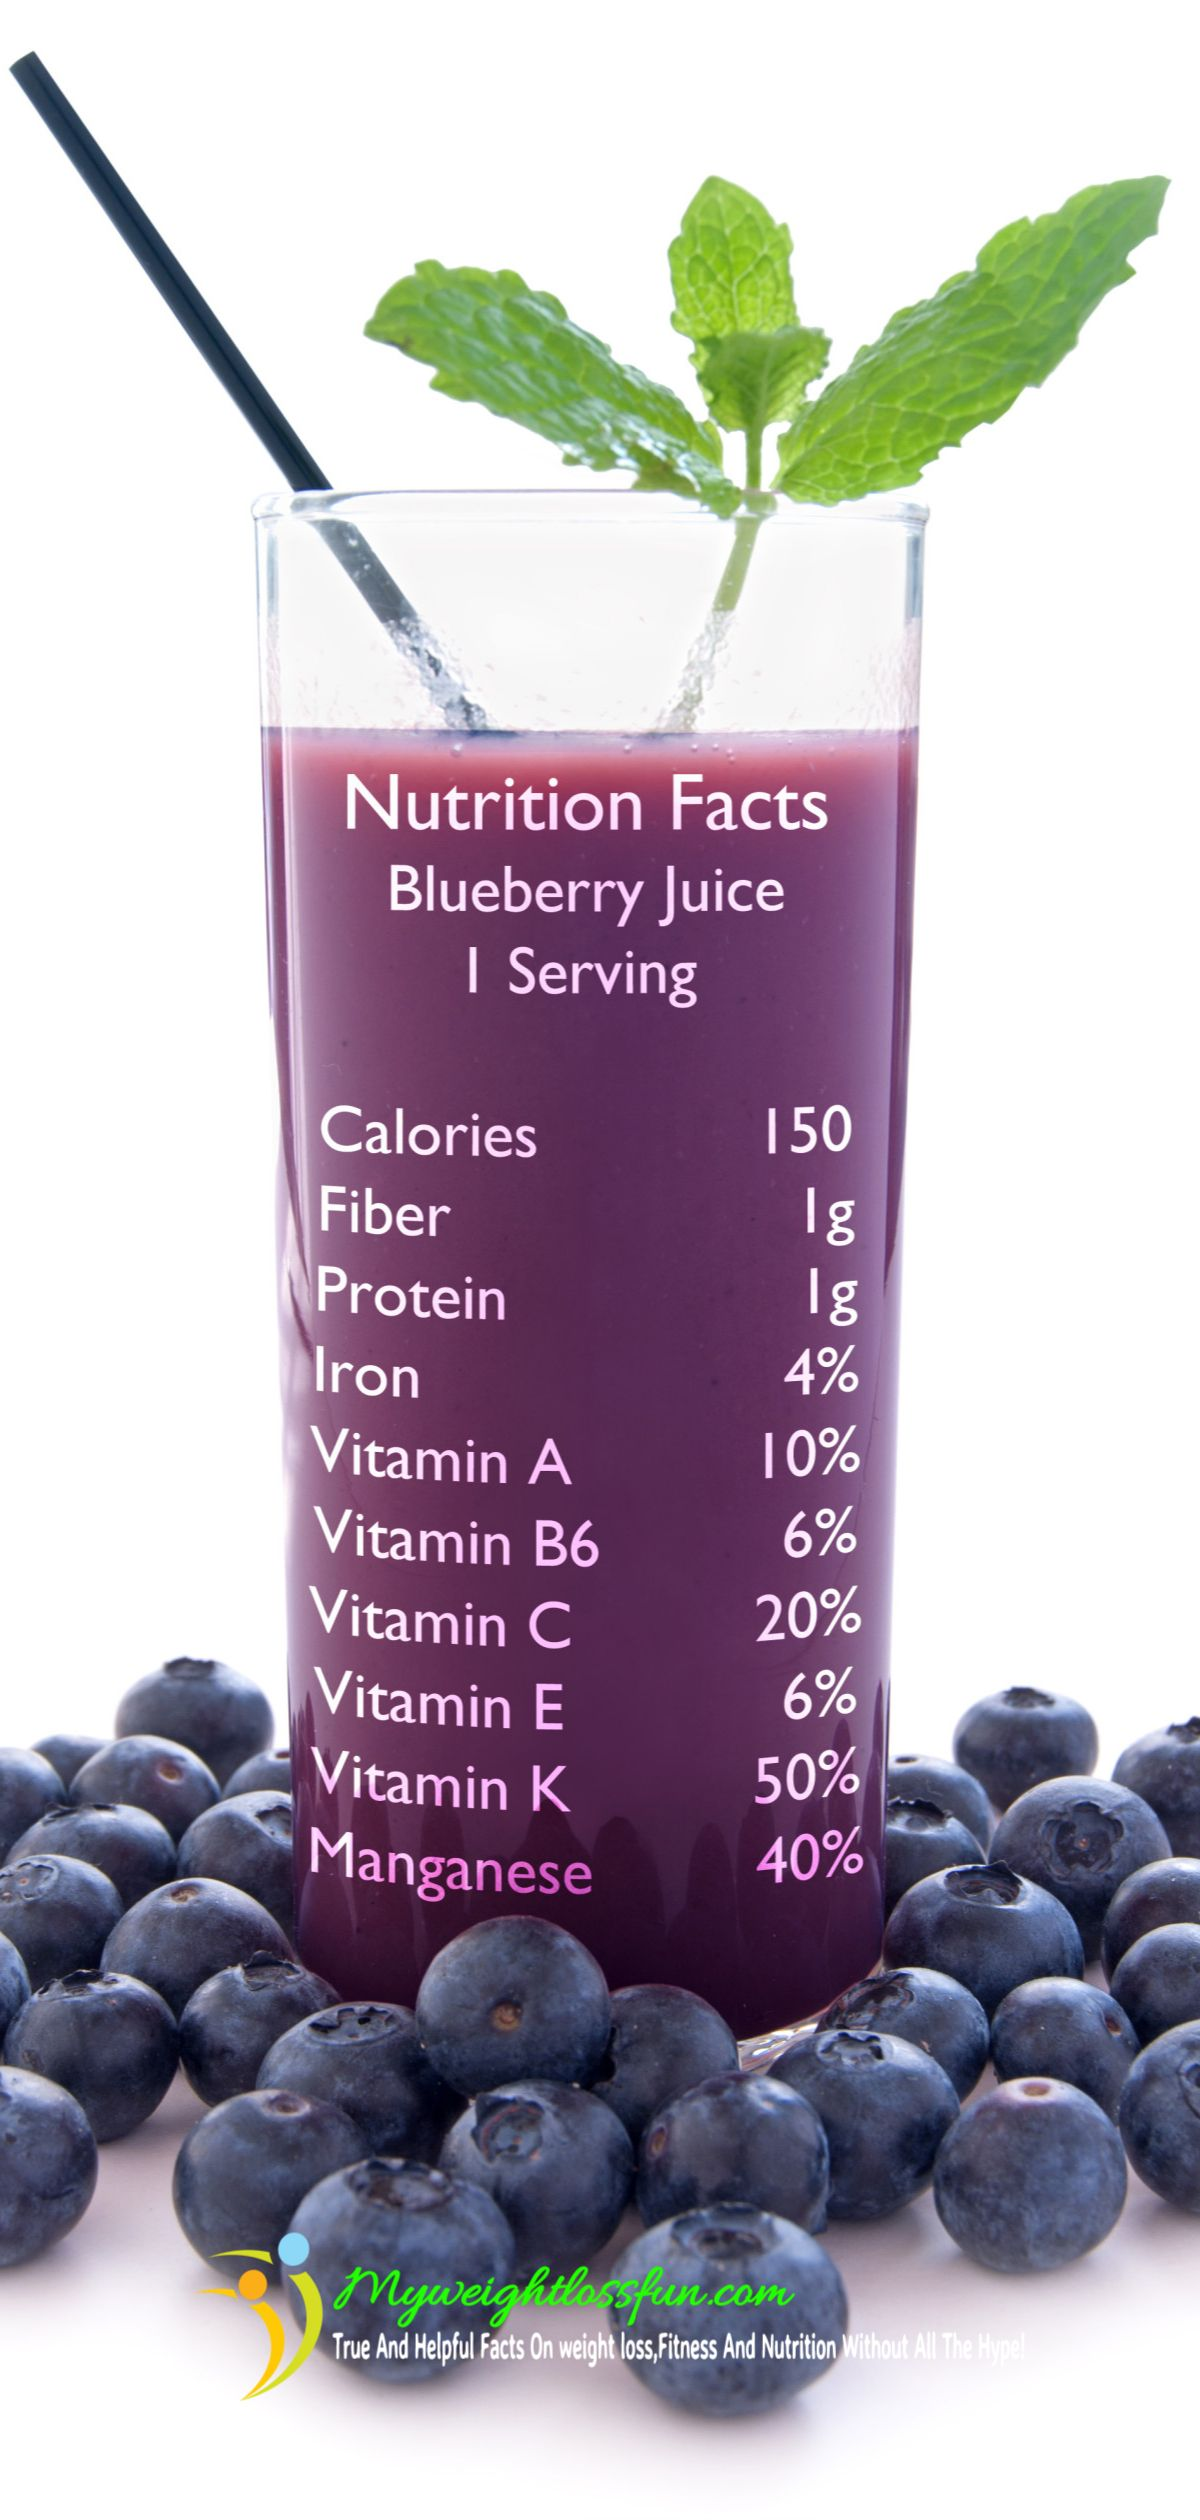 6 blueberry juice benefits you'd never thought of